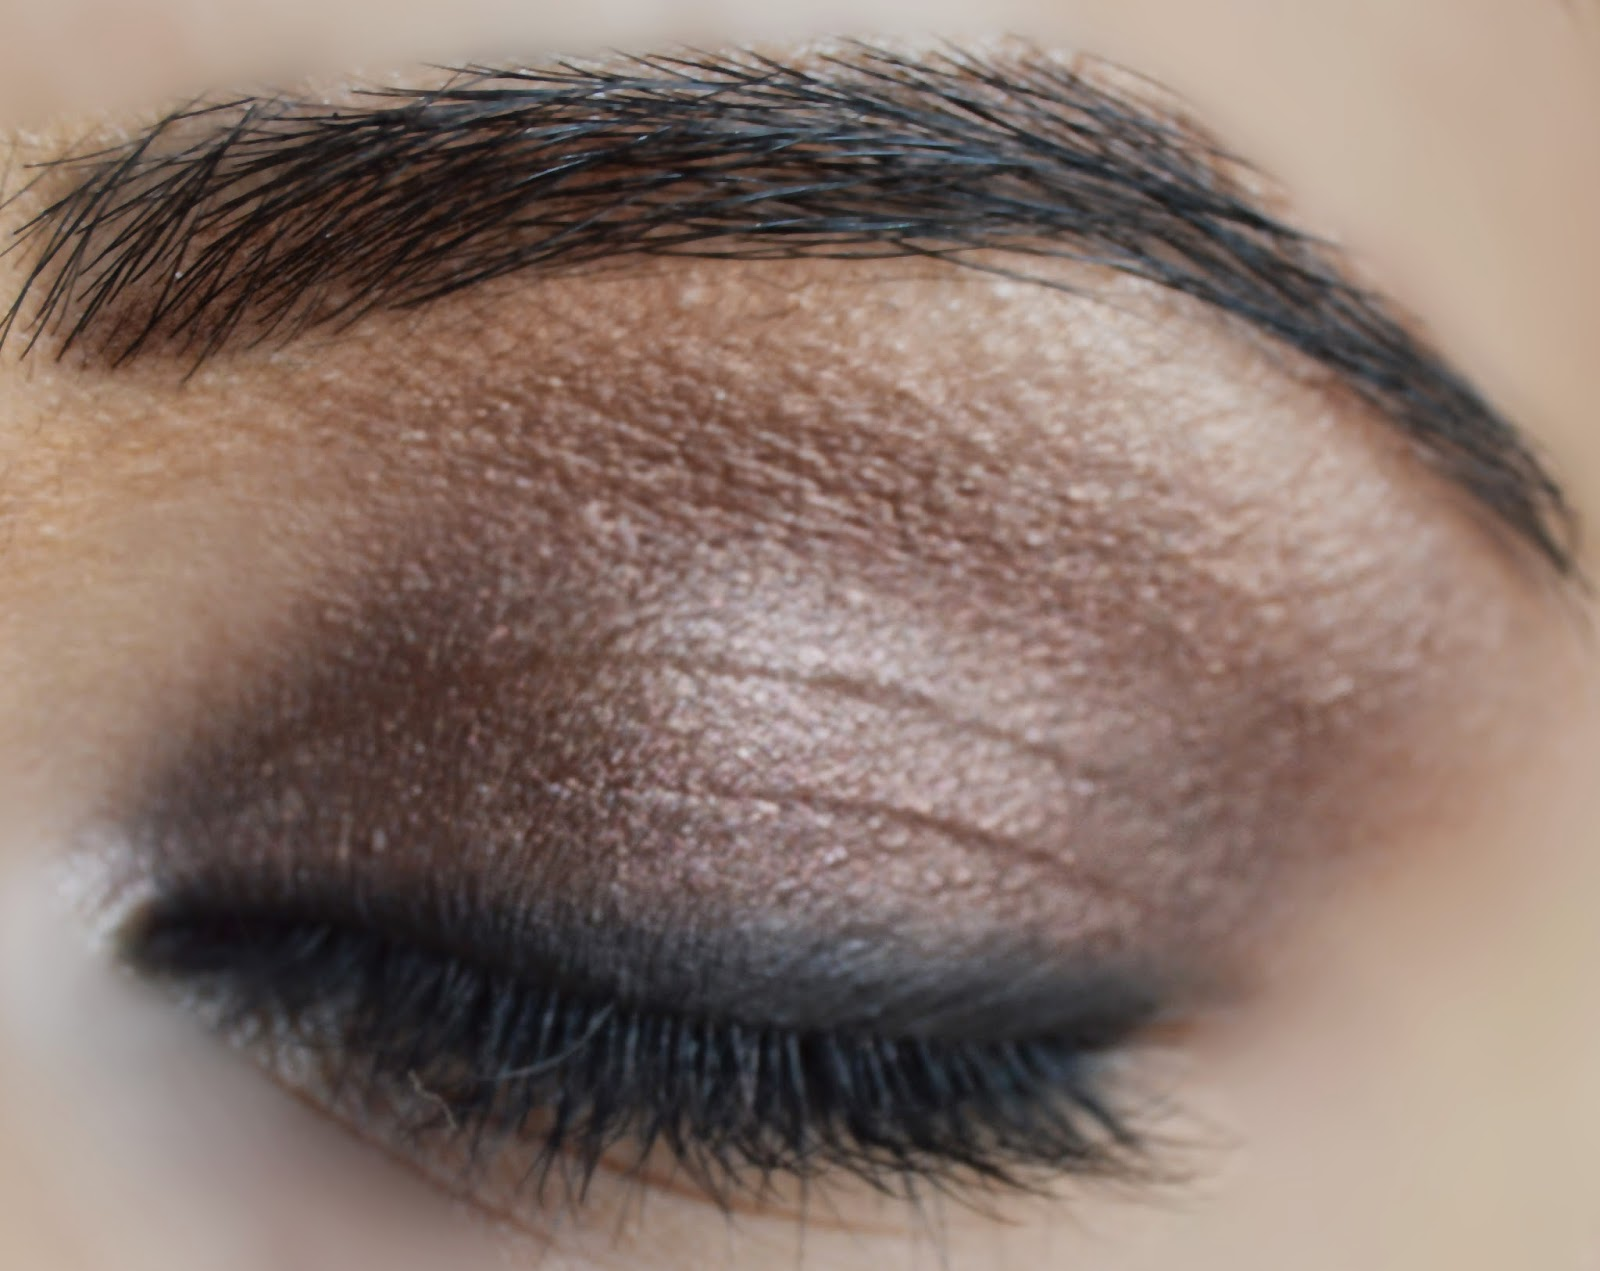 Brown smokey eye makeup tutorial.